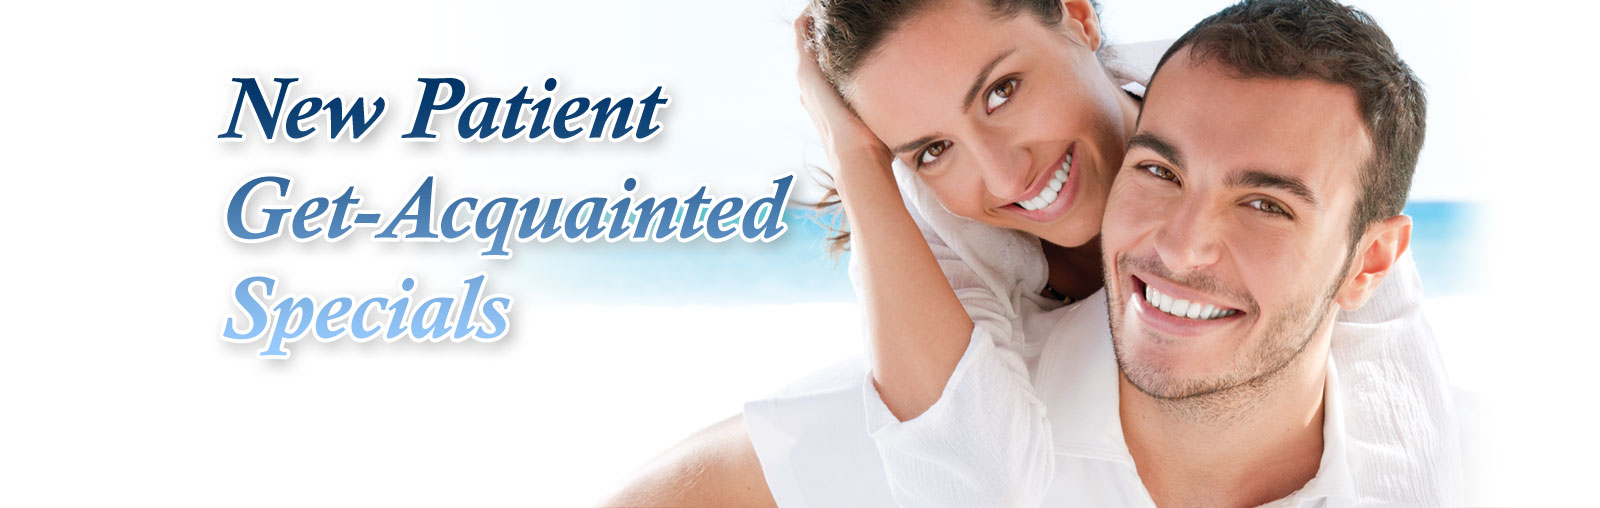 Dental Office Specials Meriden CT